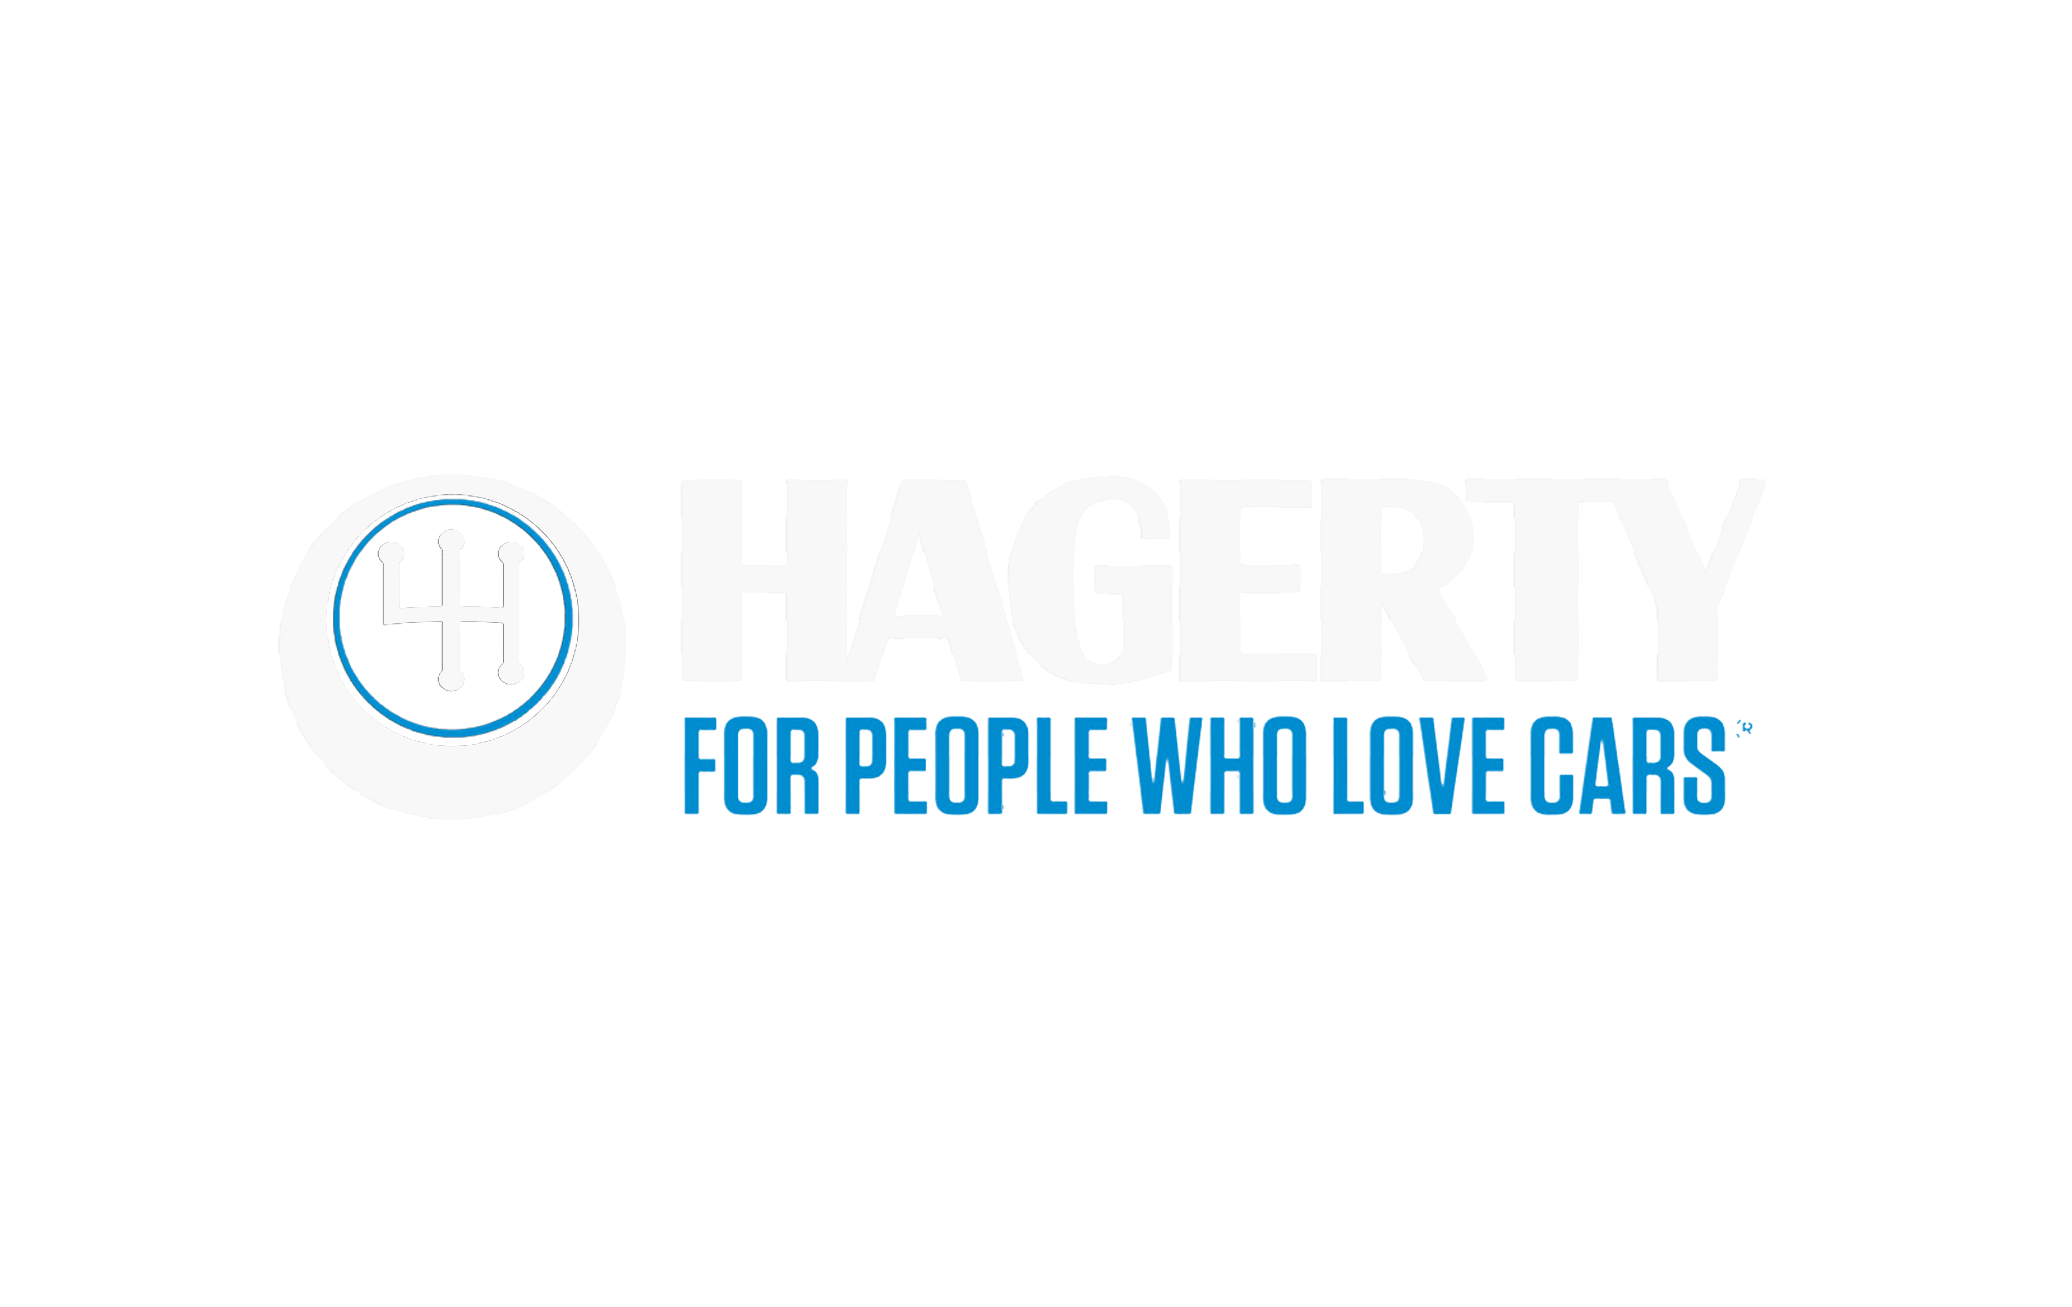 Website Logos_v03 Hagerty White_Colour.png